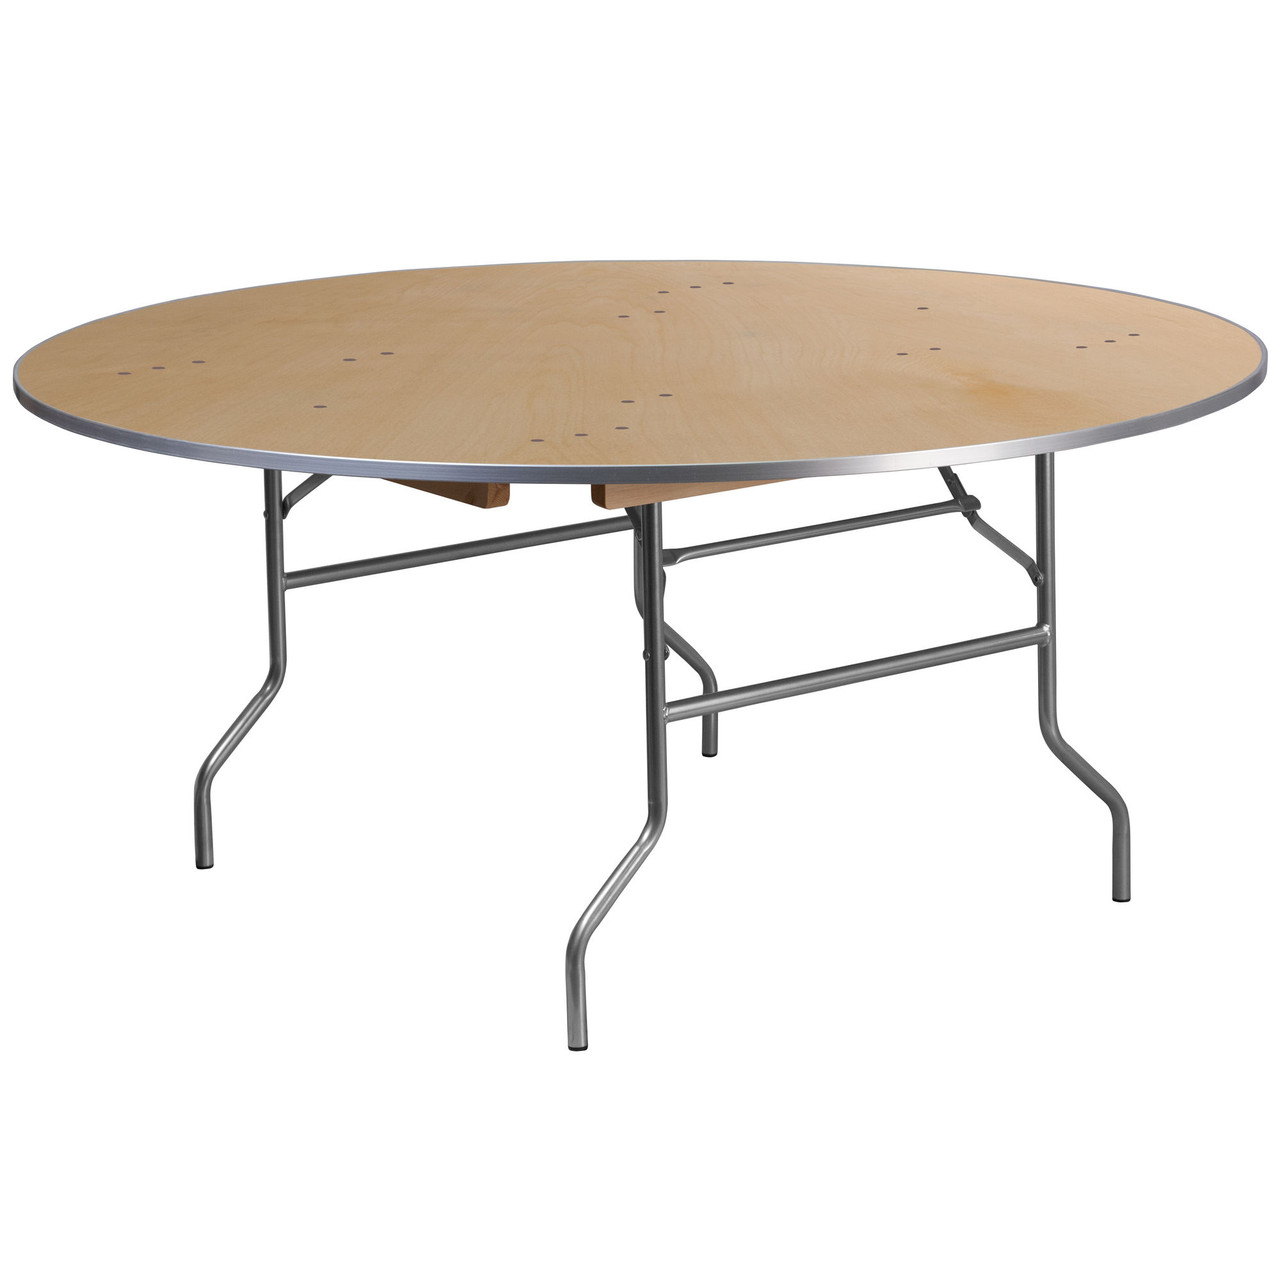 72 Round Birchwood Folding Banquet Table Round Wooden Banquet Tables For Sale